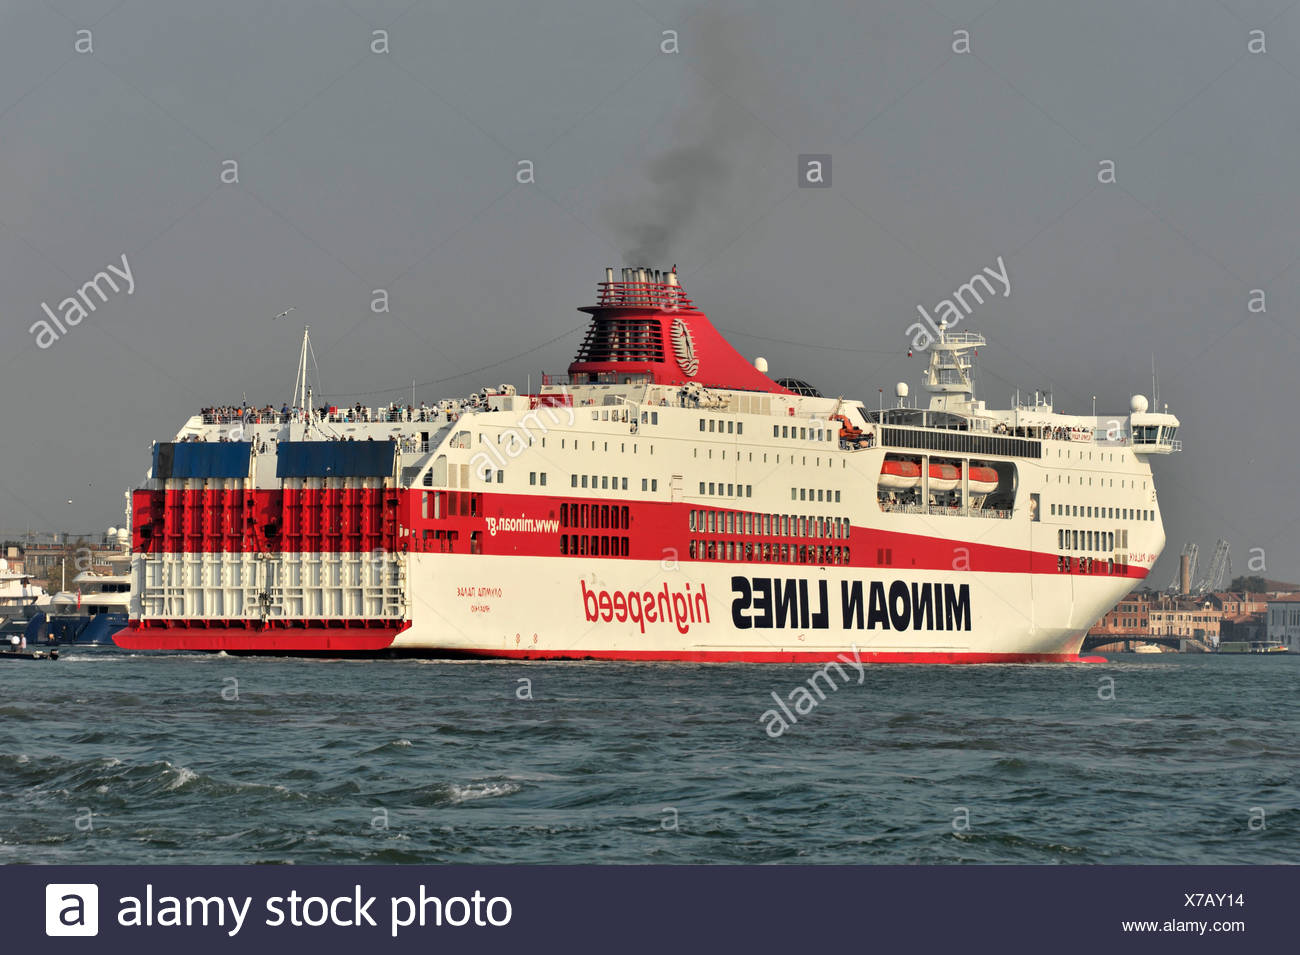 Olympia Palace, a ferry, Minoan Lines, built in 2001, 214m, 2182  passengers, approaching the harbour, Venice, Veneto region